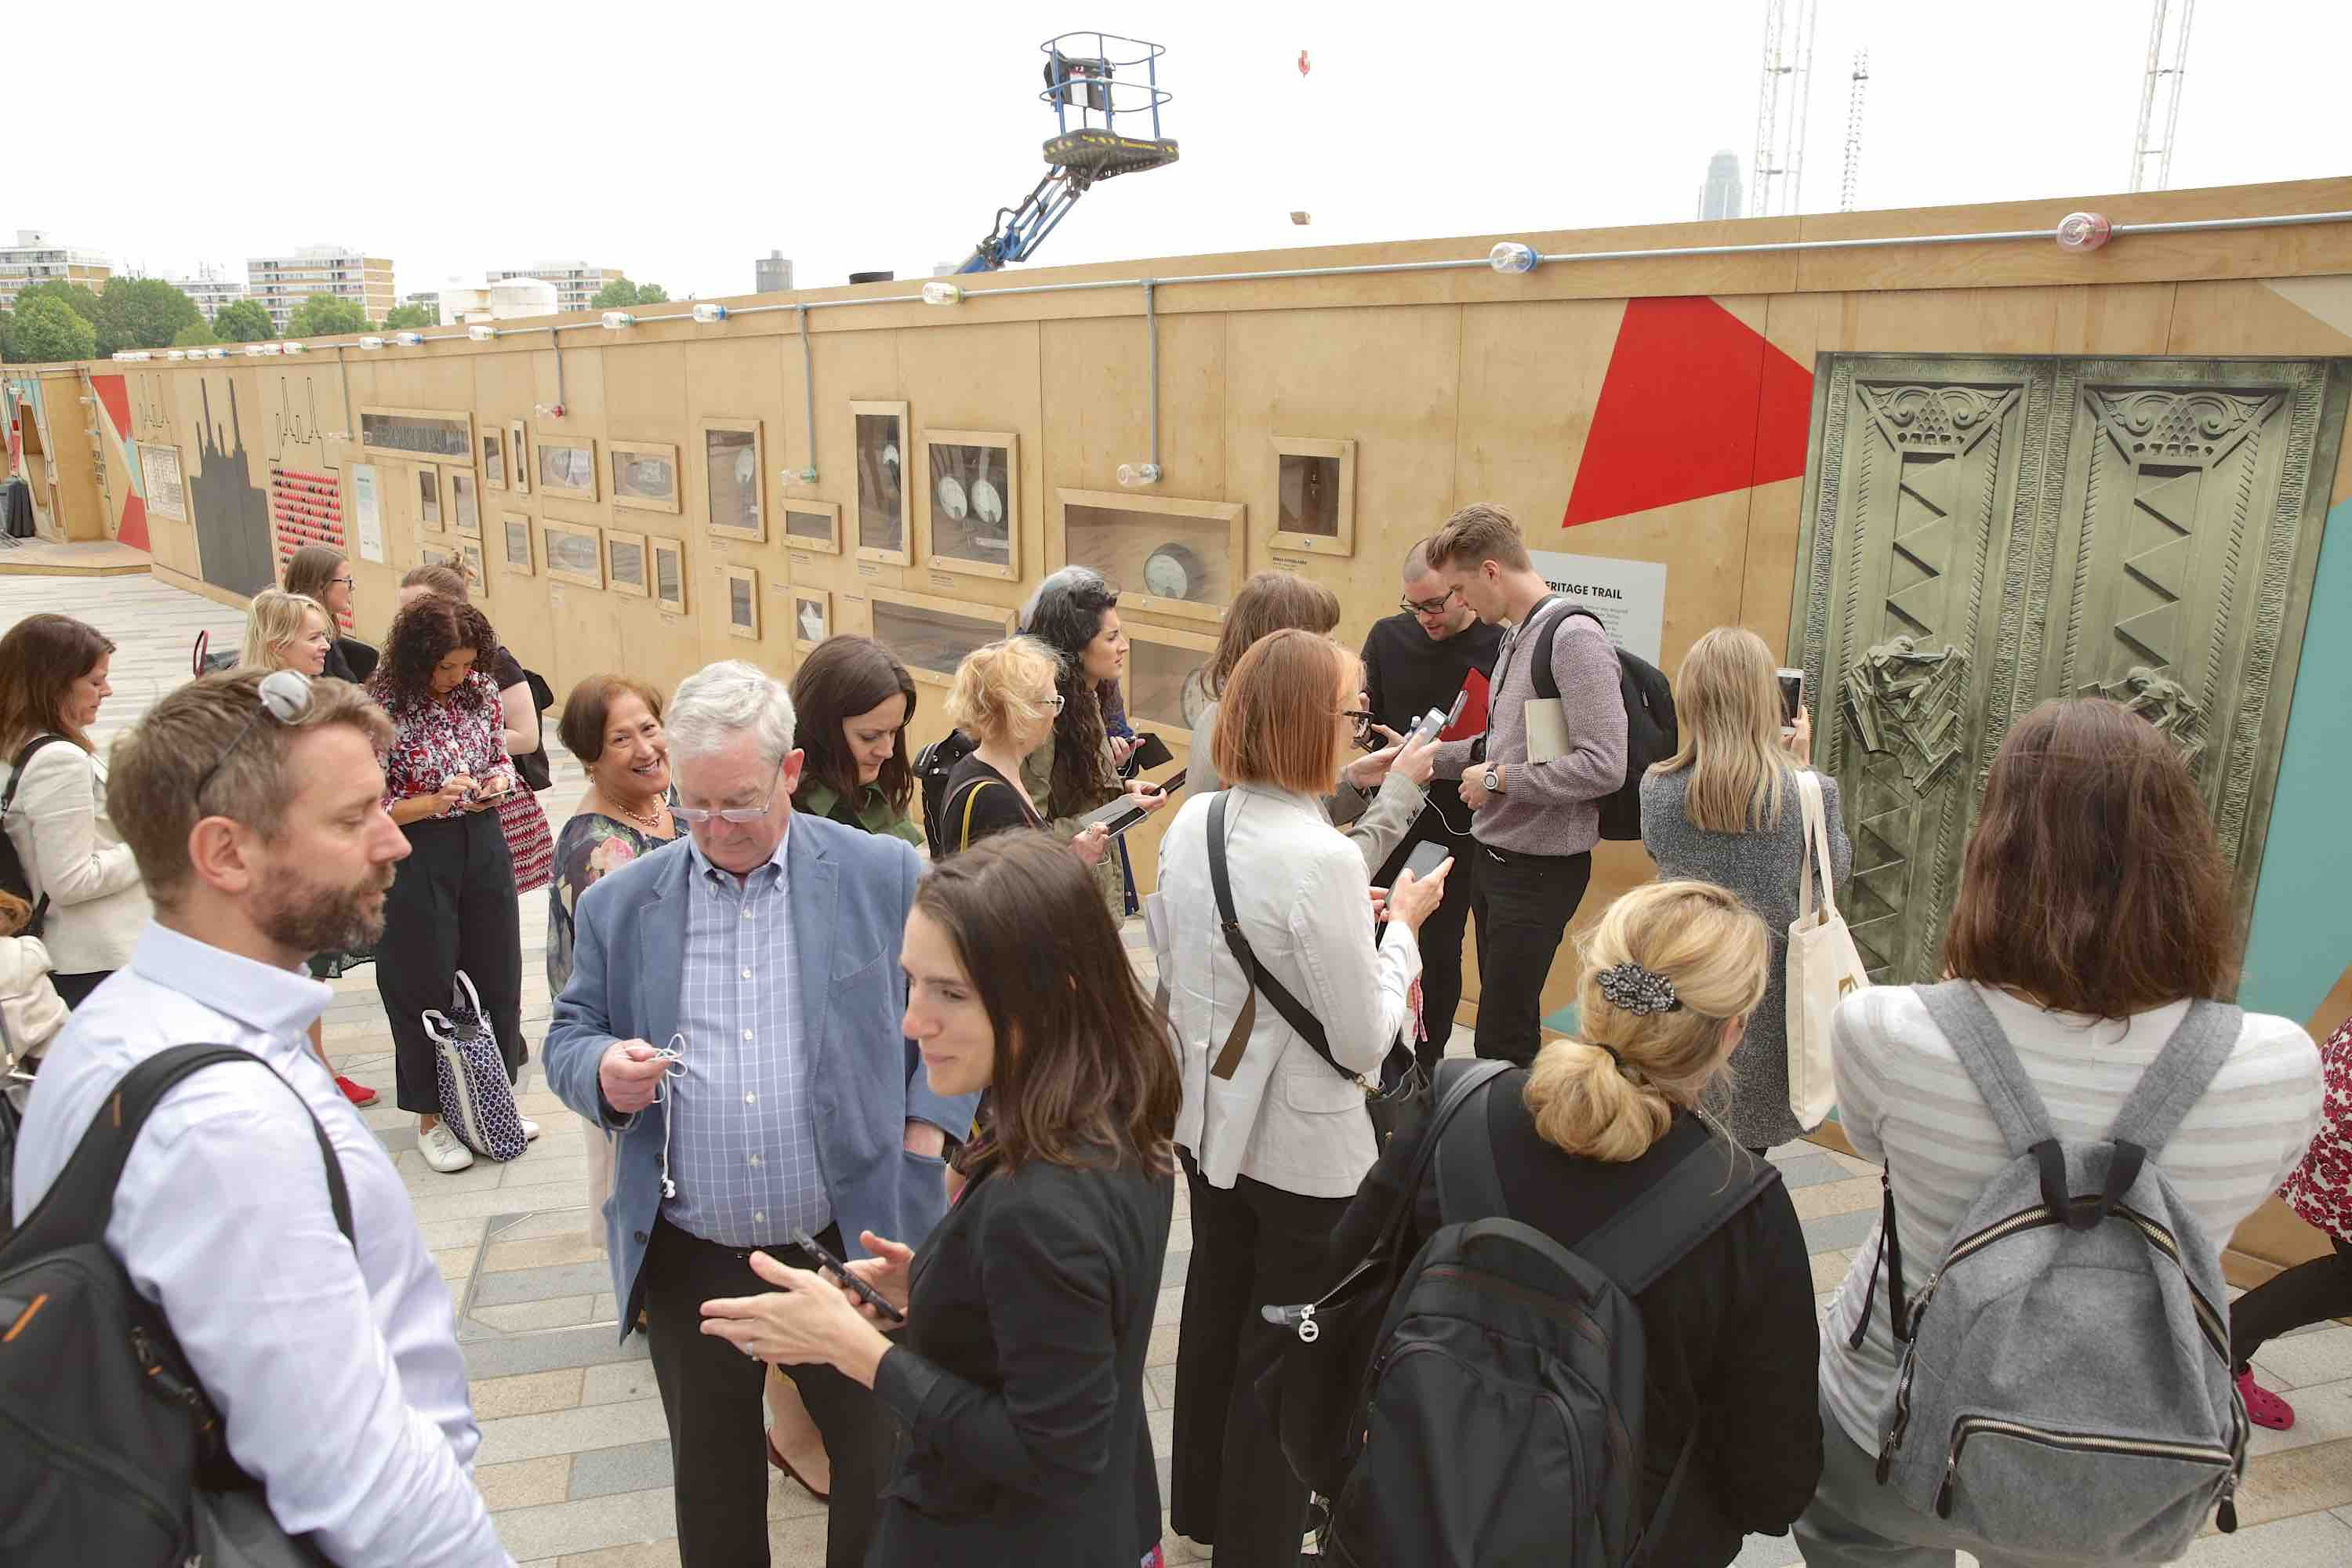 A crowd of people gather outside, in front of a wooden wall to try the AR Door installation at Battersea Power Station